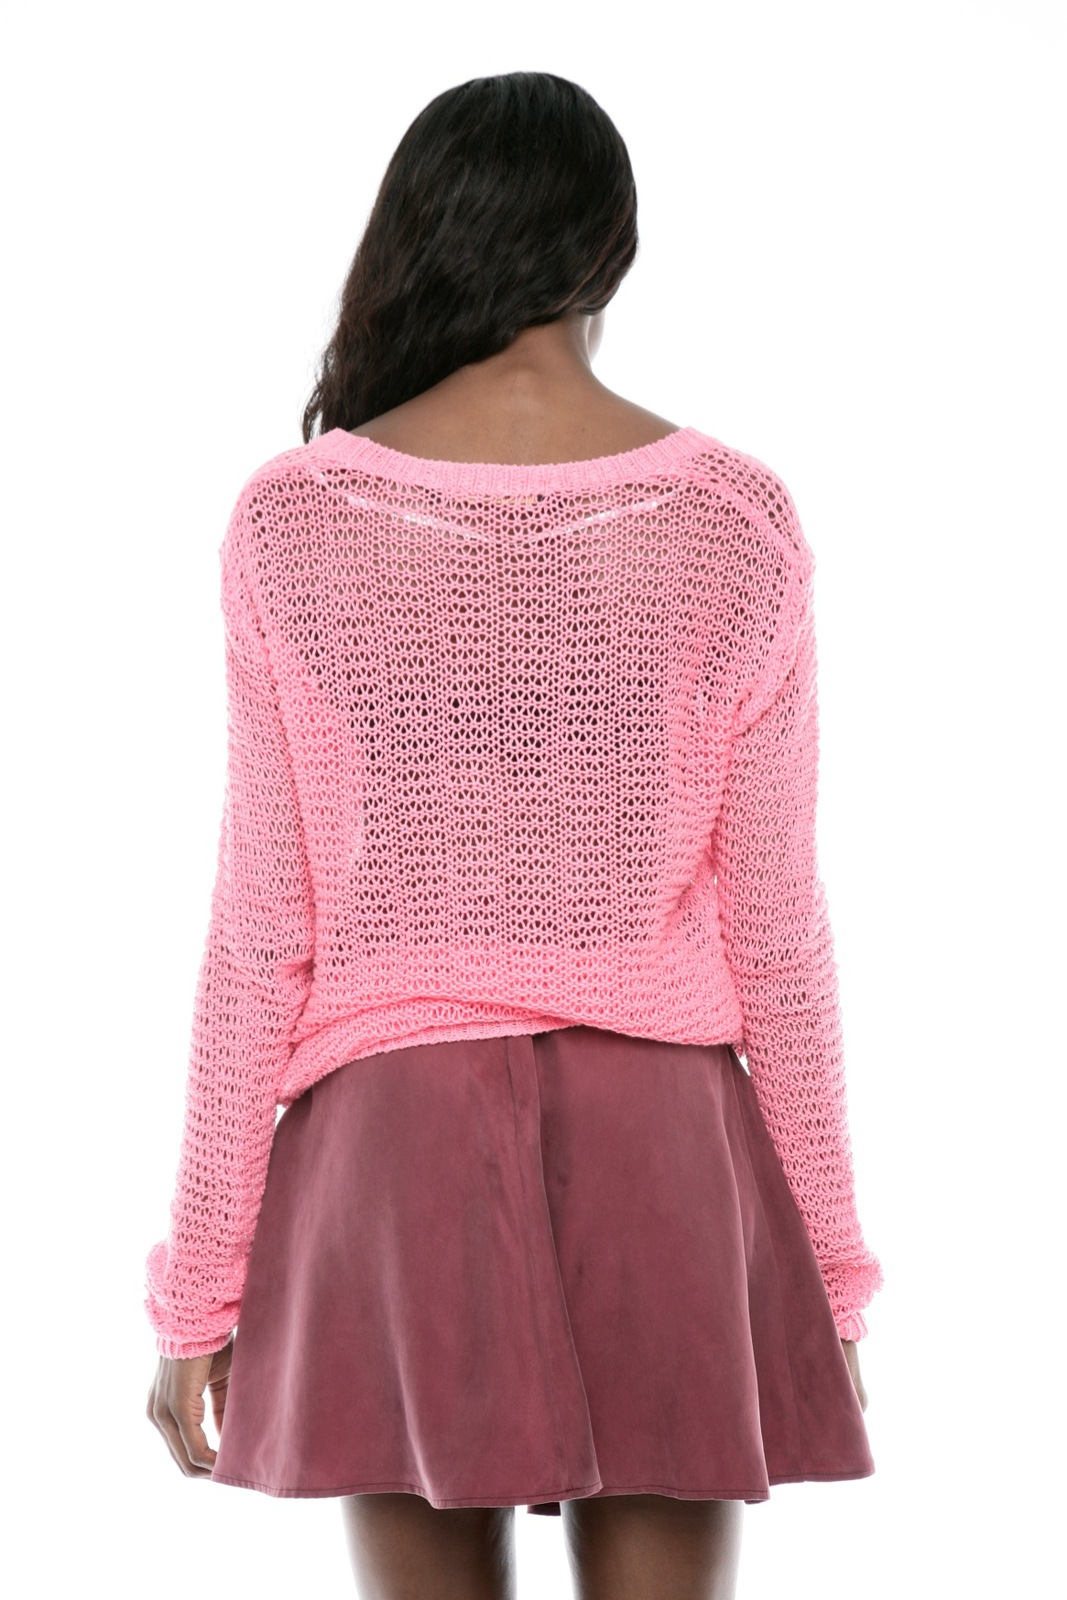 Something Else Loose-Knit Pullover Sweater - Back Cropped Image